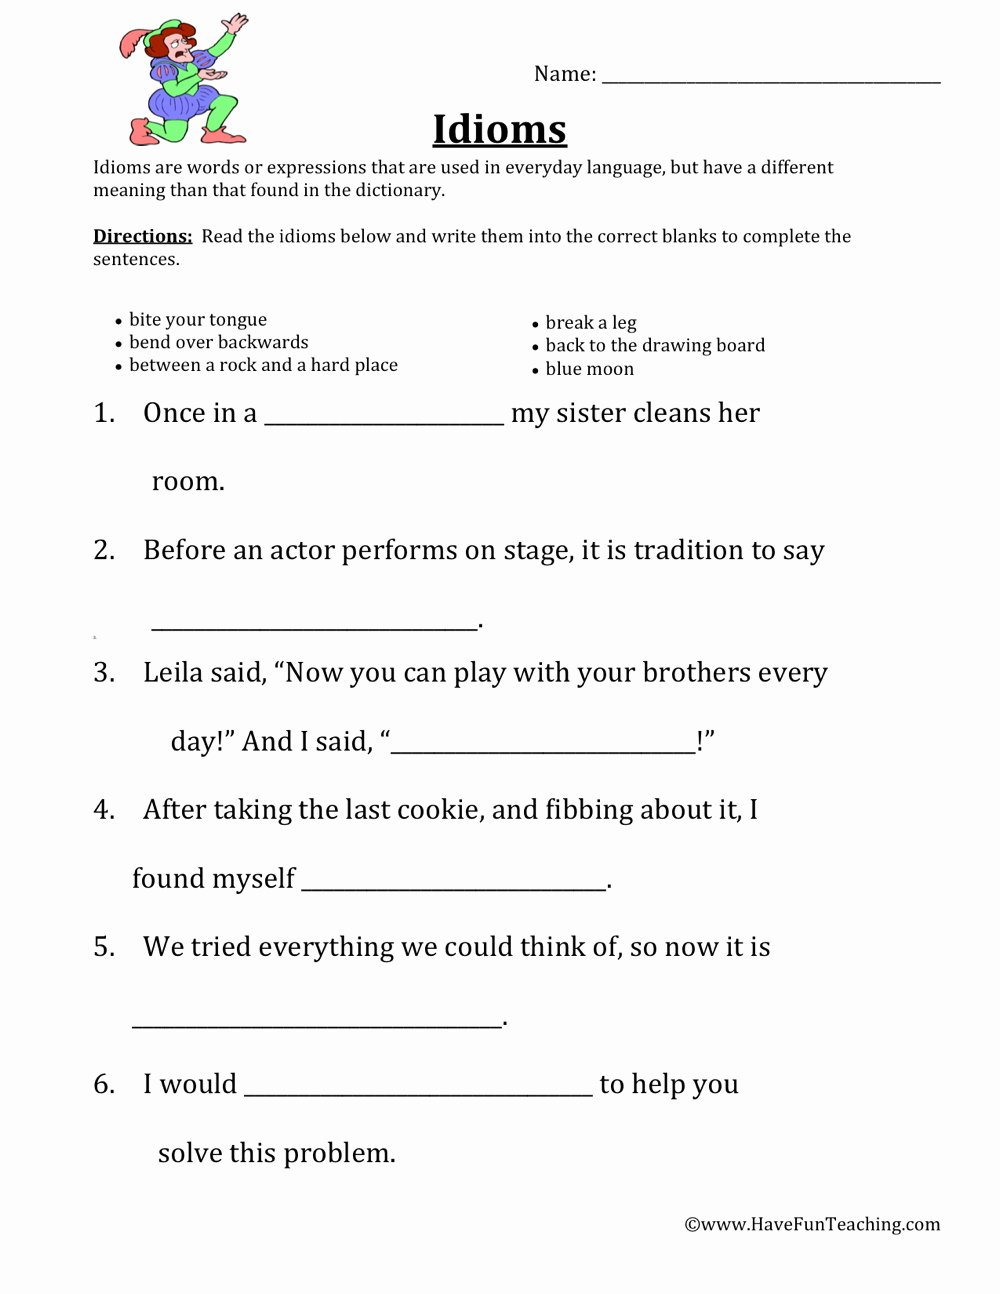 Idiom Worksheets for 2nd Grade Printable Idiom Worksheets